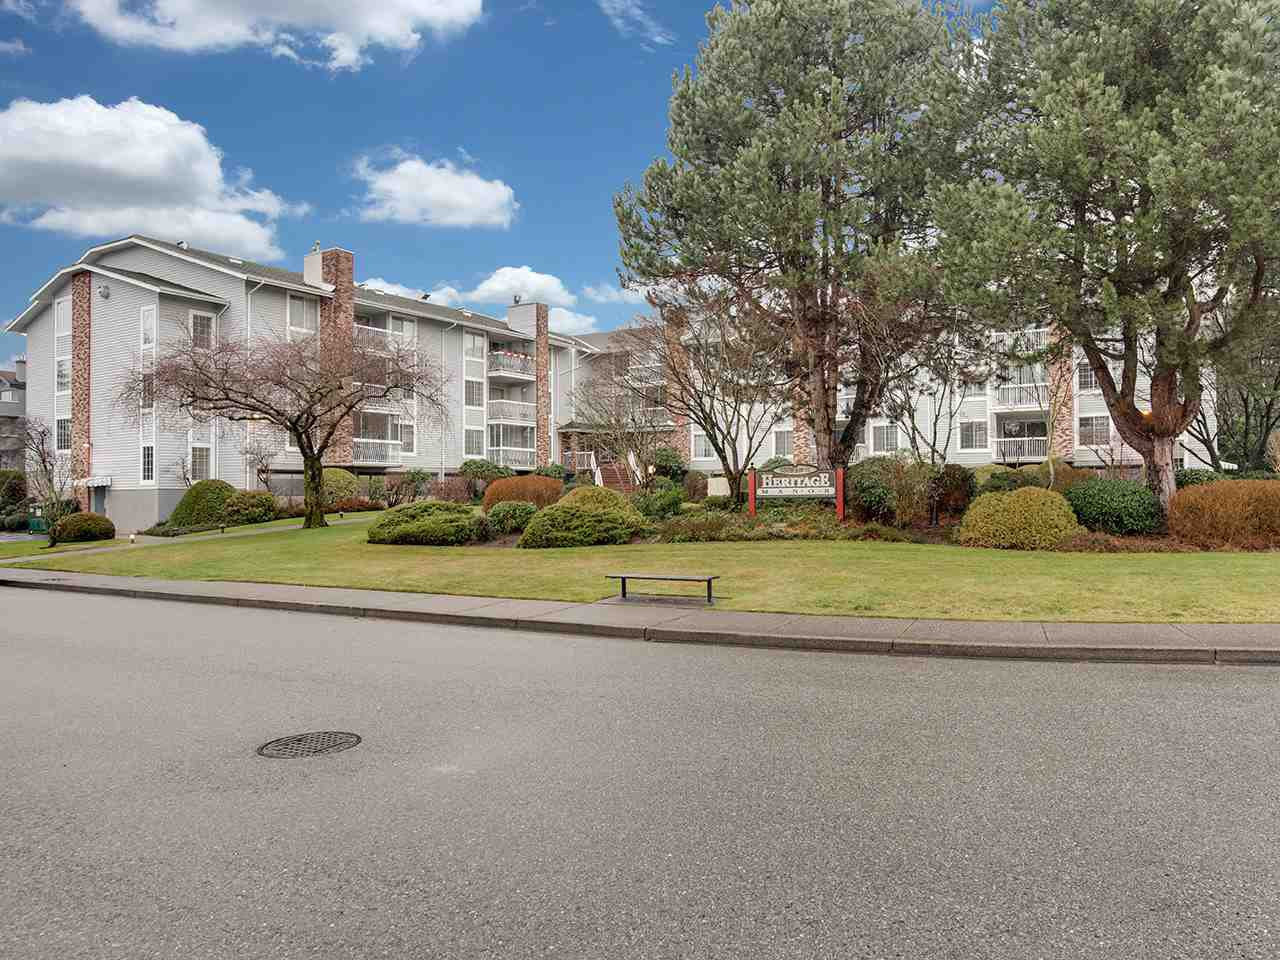 Main Photo: 109 5379 205 Street in Langley: Langley City Condo for sale : MLS®# R2423281